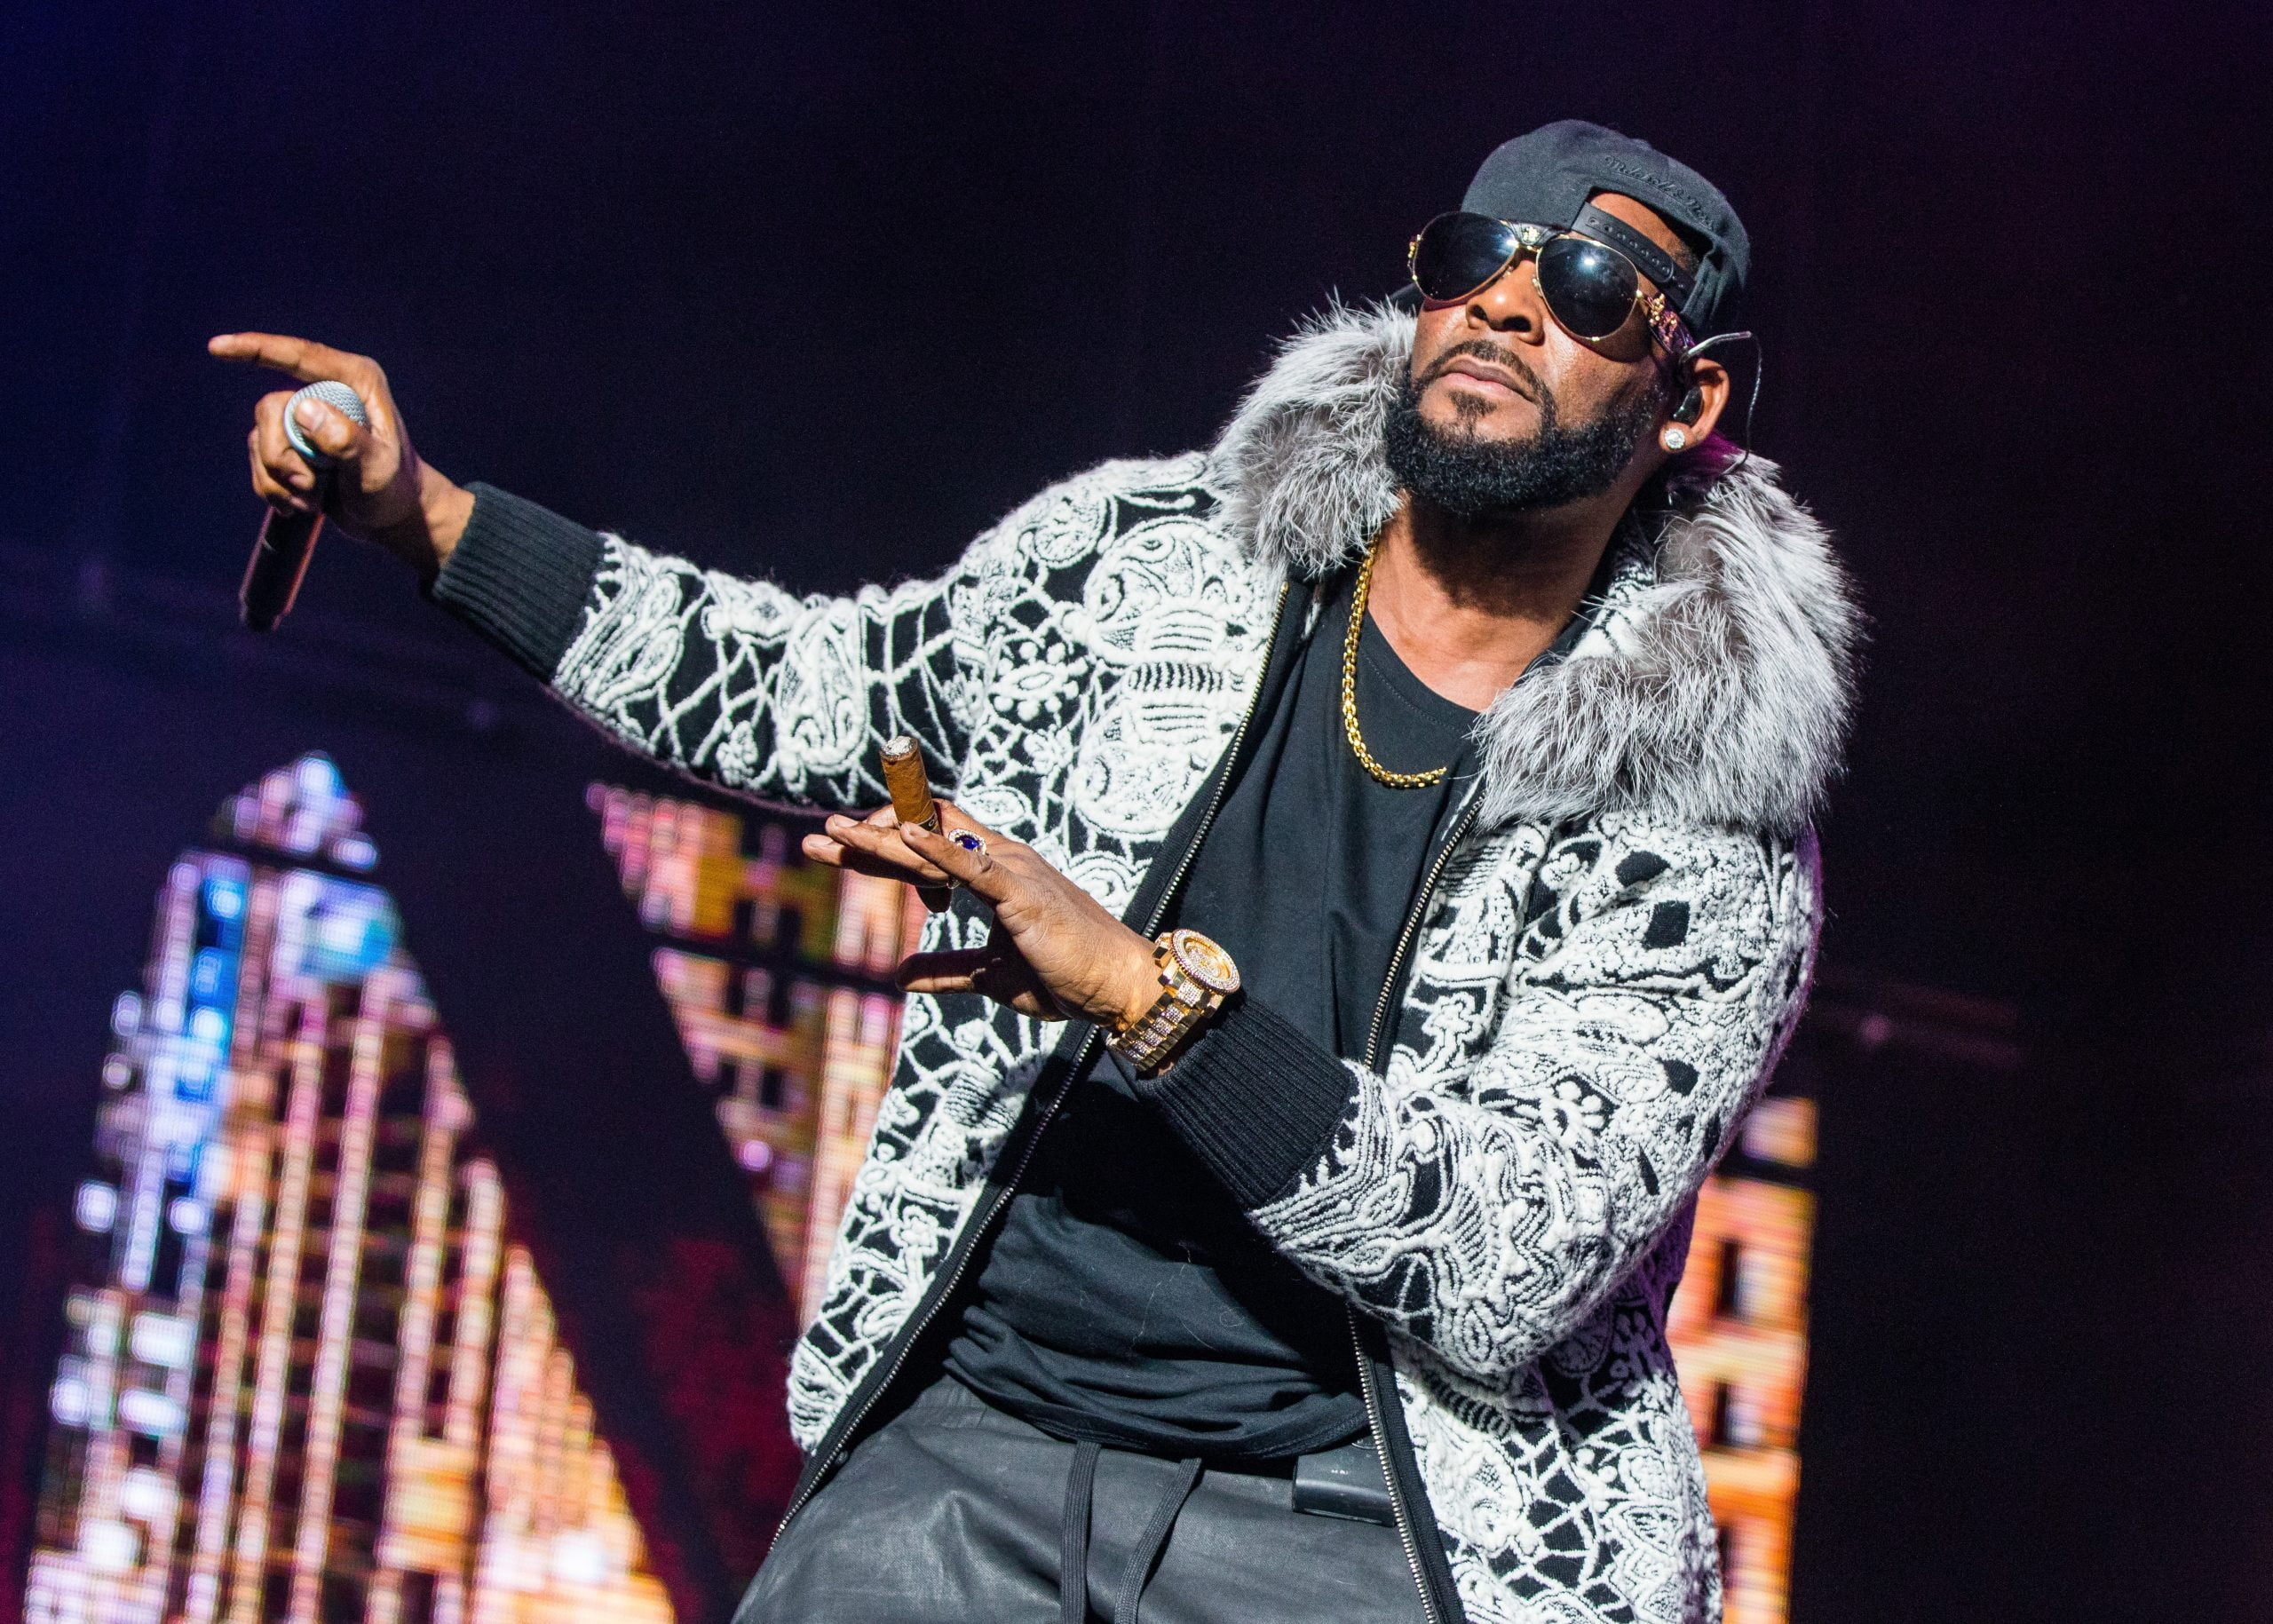 Spotify deletes R. Kelly's music from its own playlists